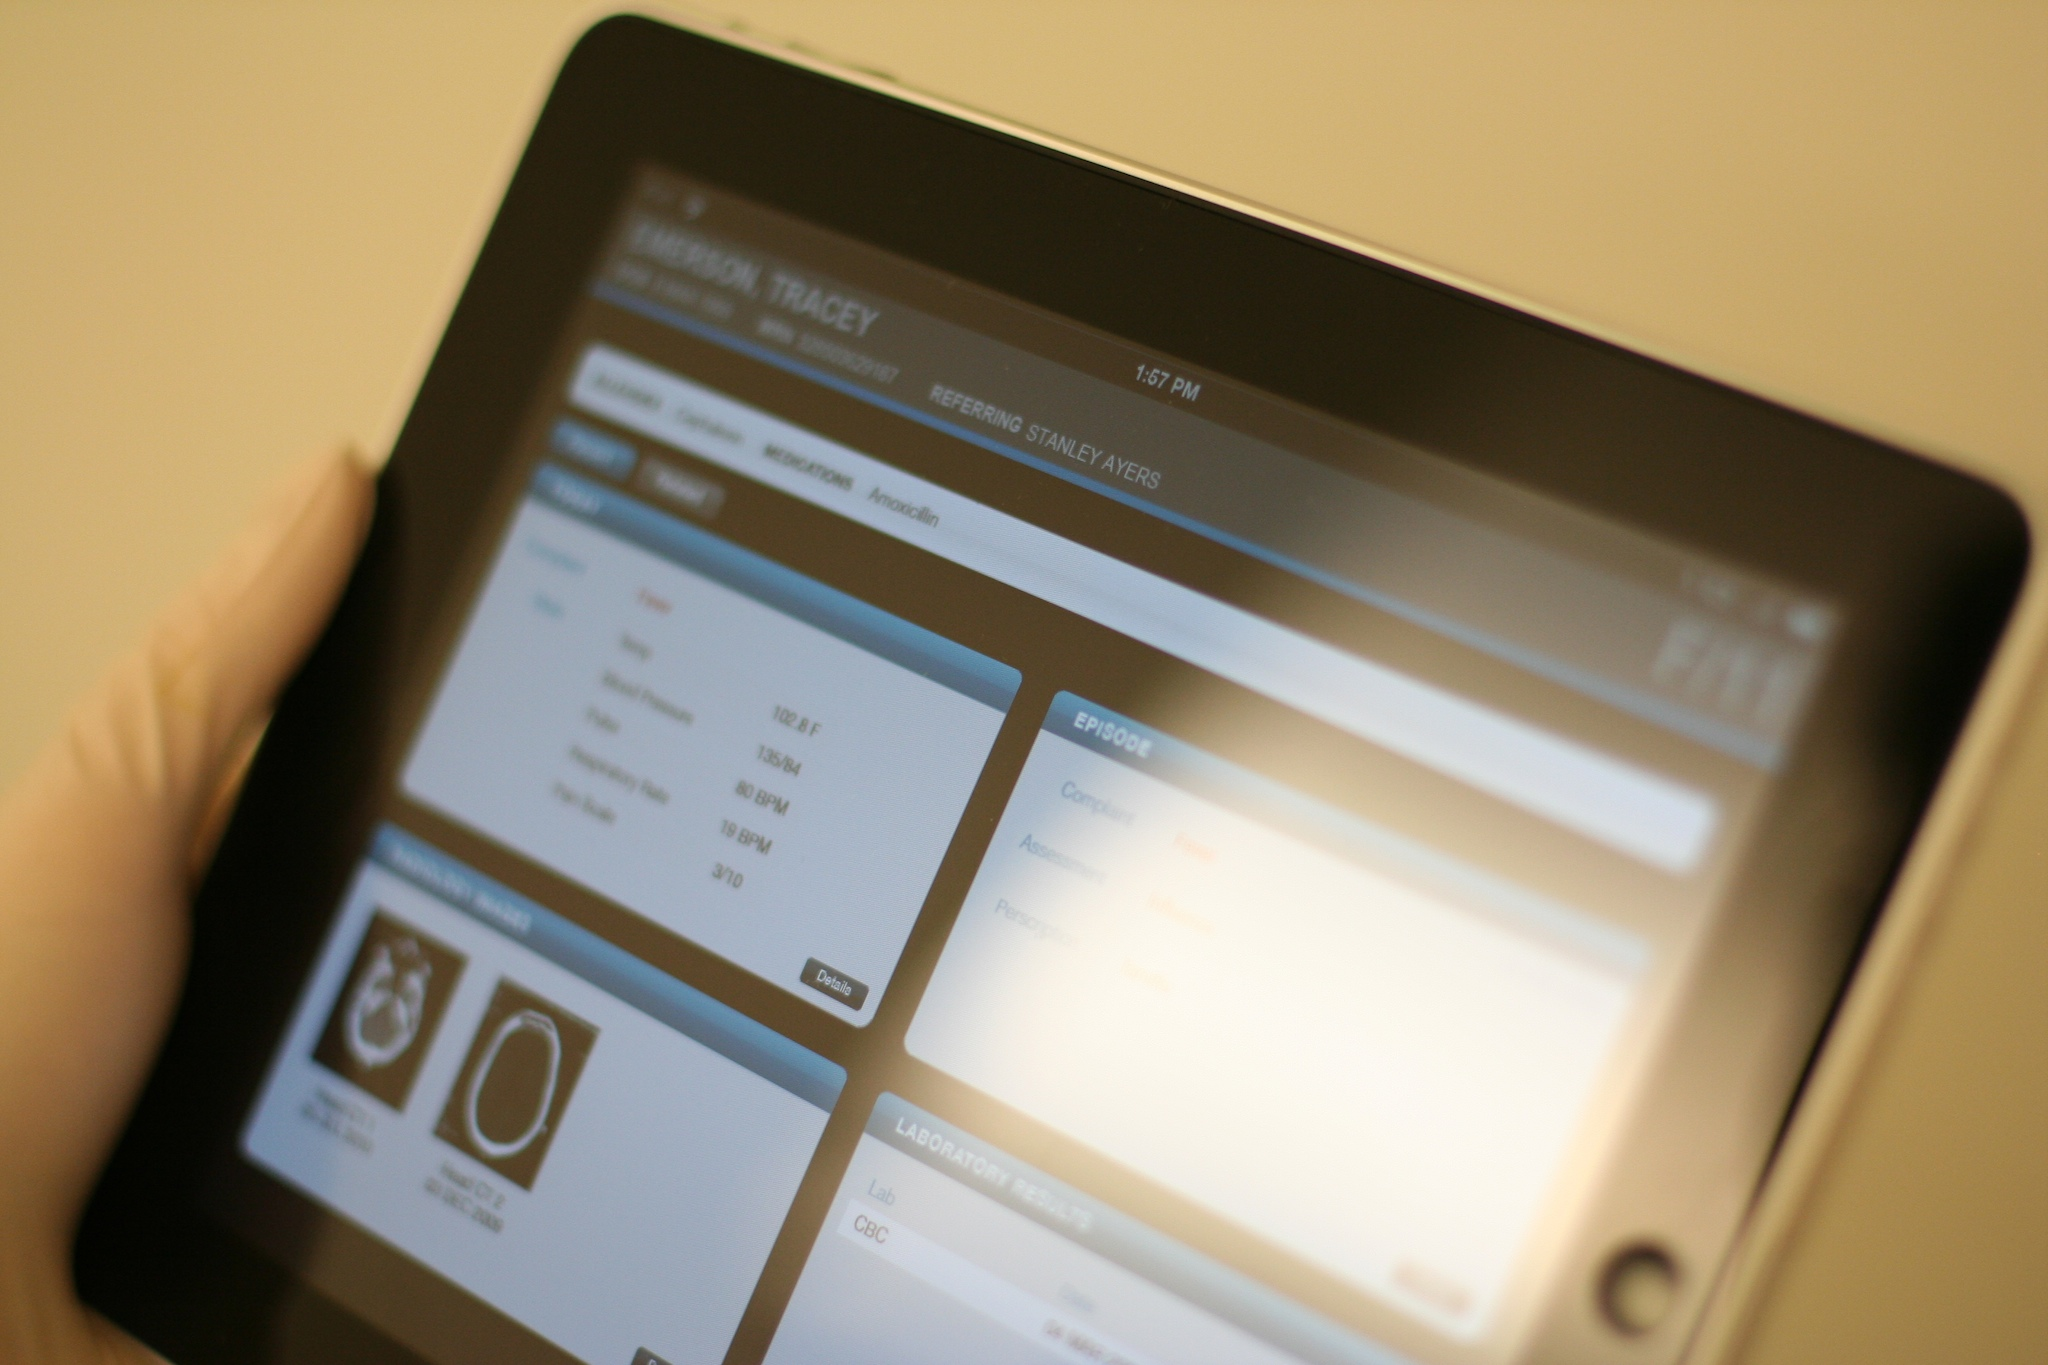 Providing practitioners with a tablet version was out of the project scope however was recommended for next steps.